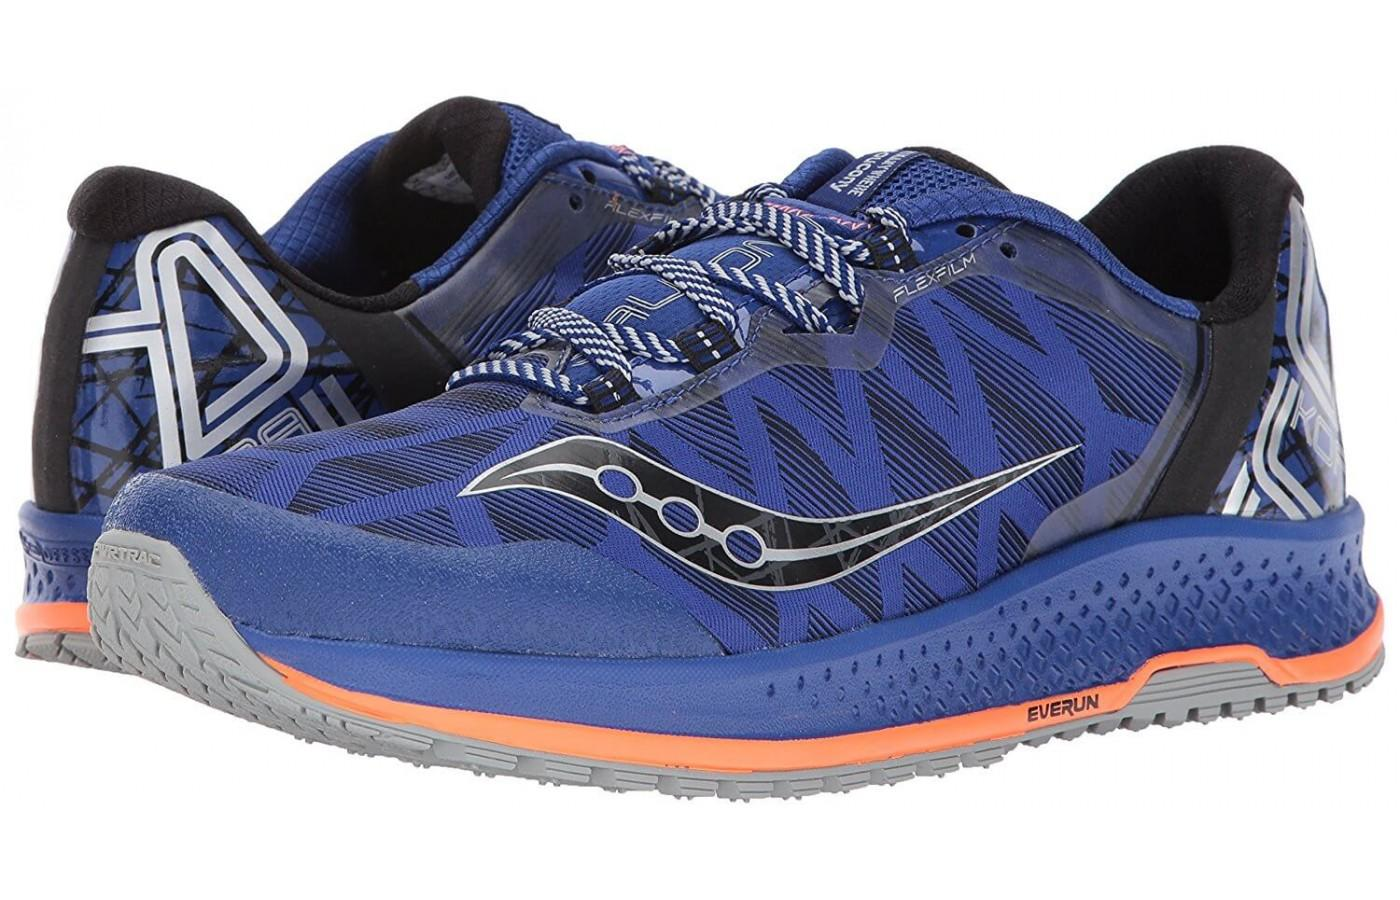 the saucony koa tr is fairly reasonably priced for such a versatile shoe